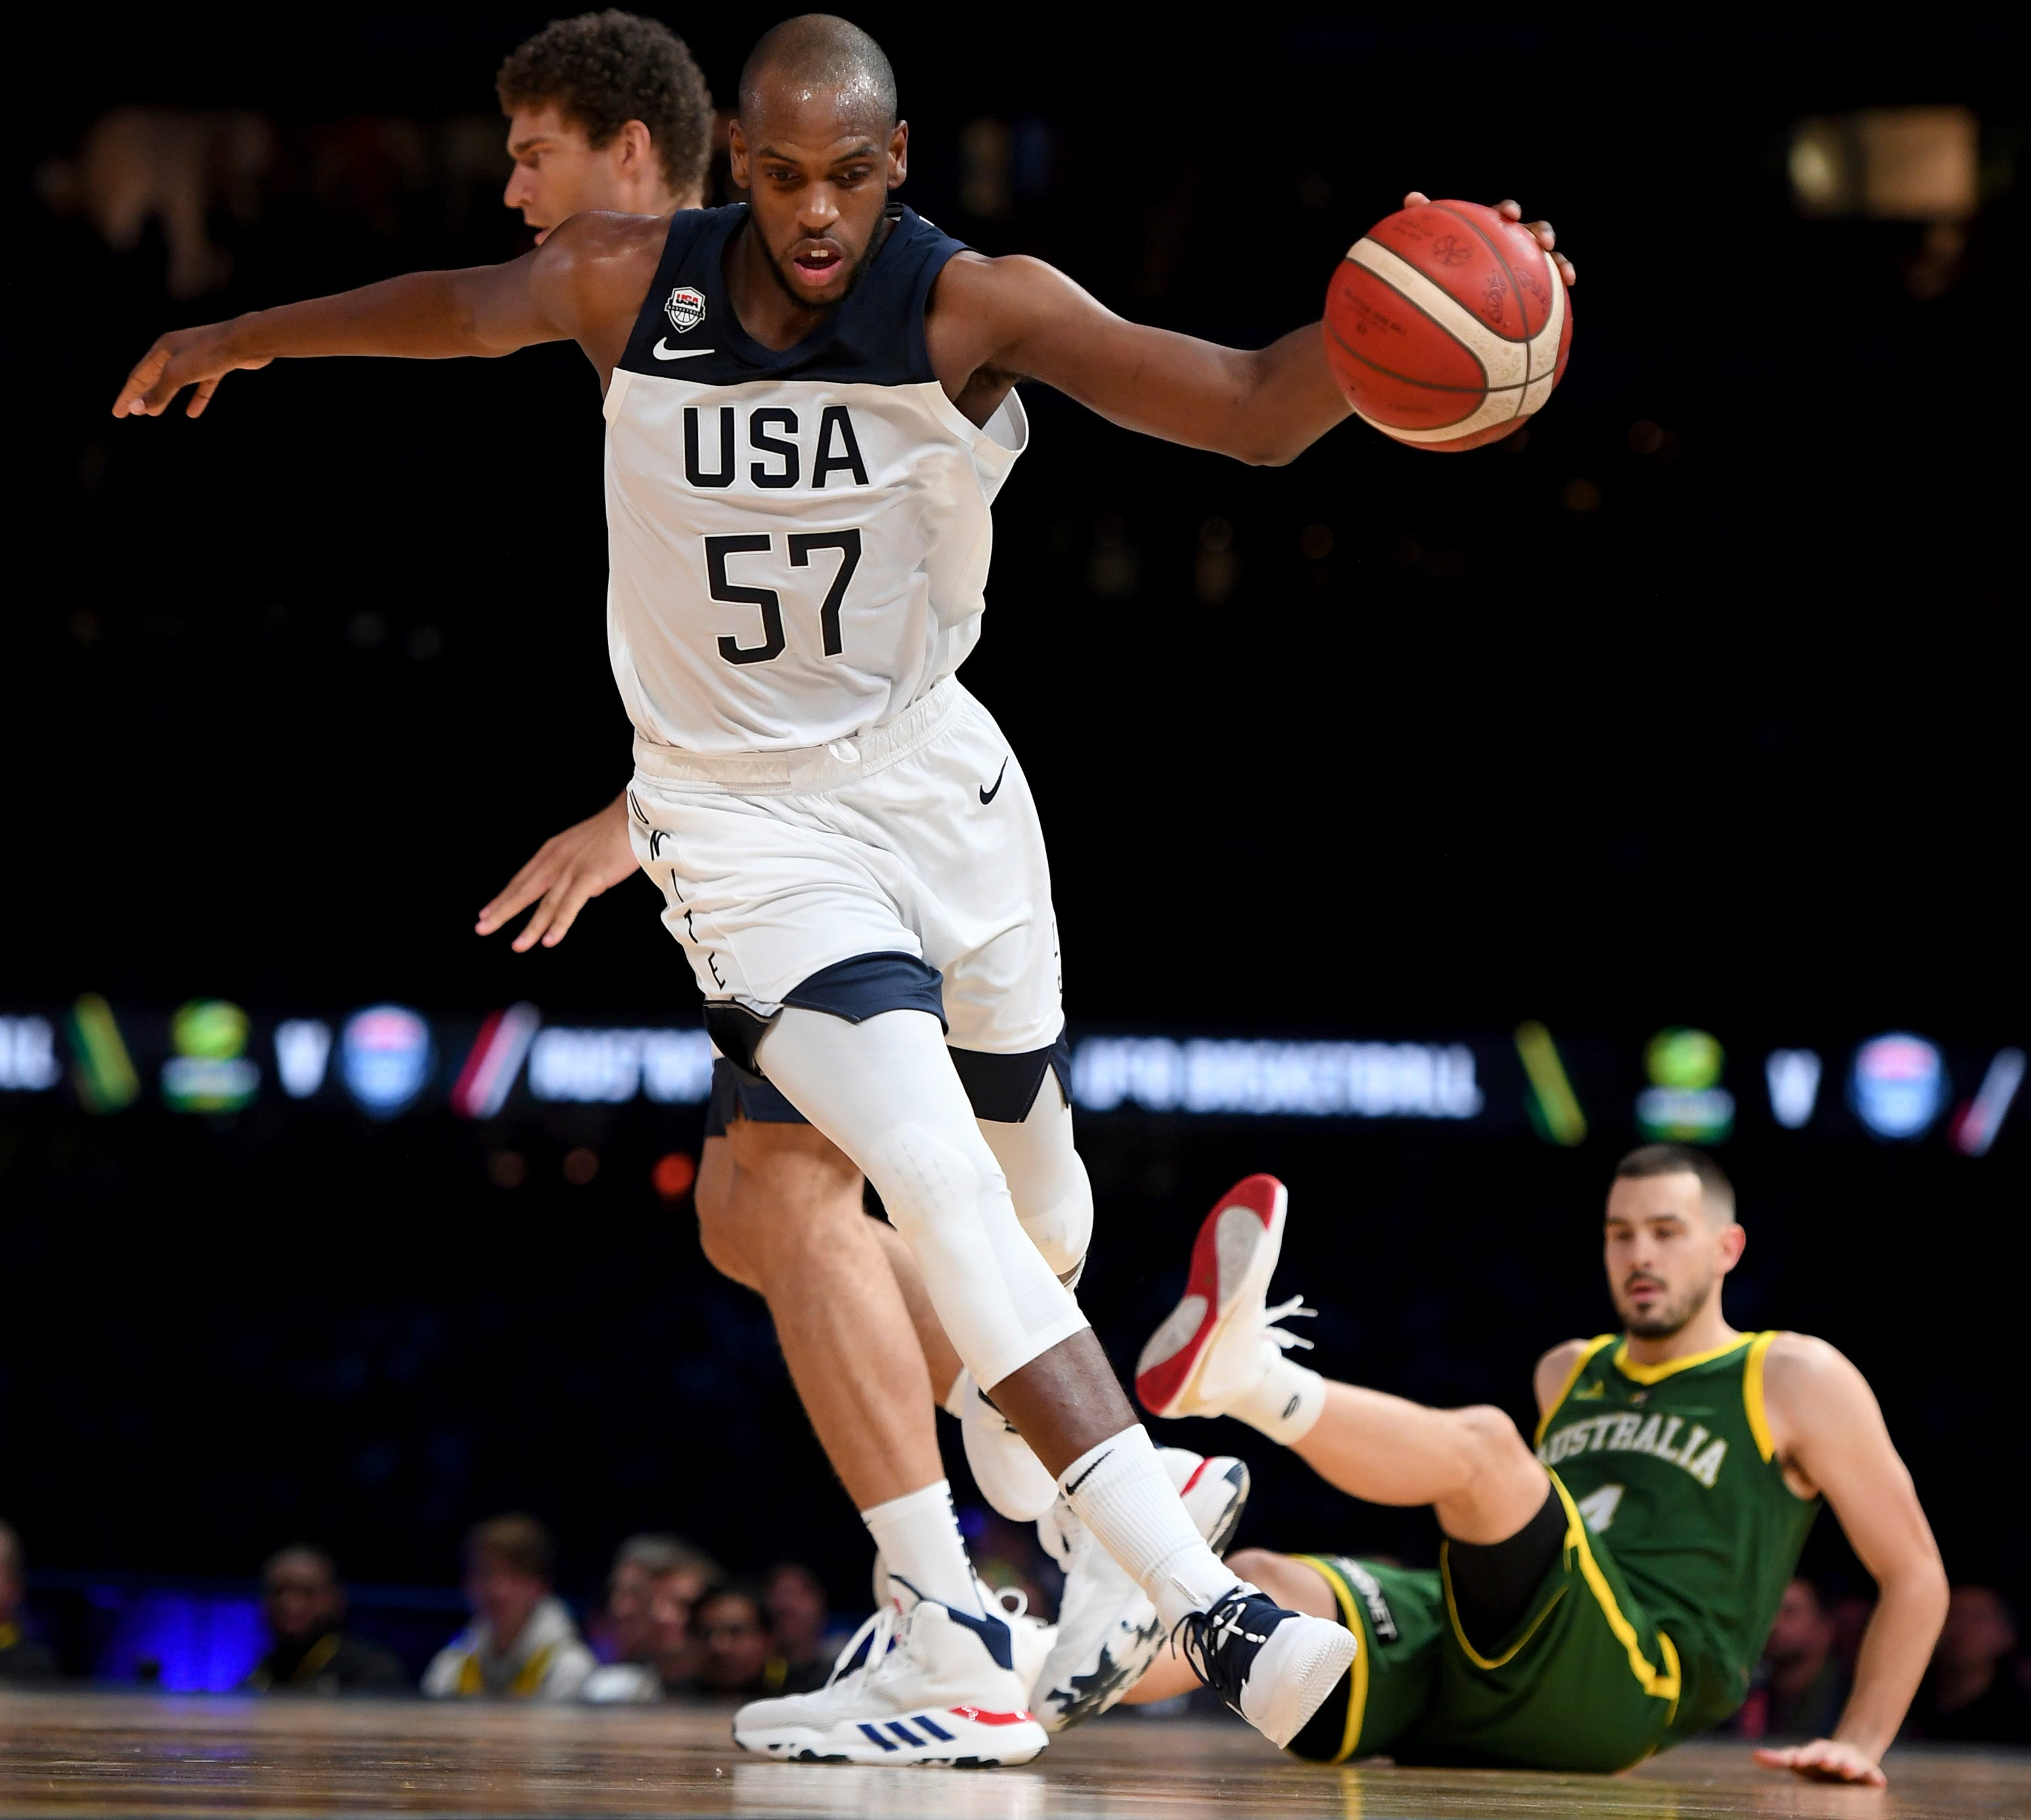 US-Australia basketball: Not all in crowd happy with seating thumbnail